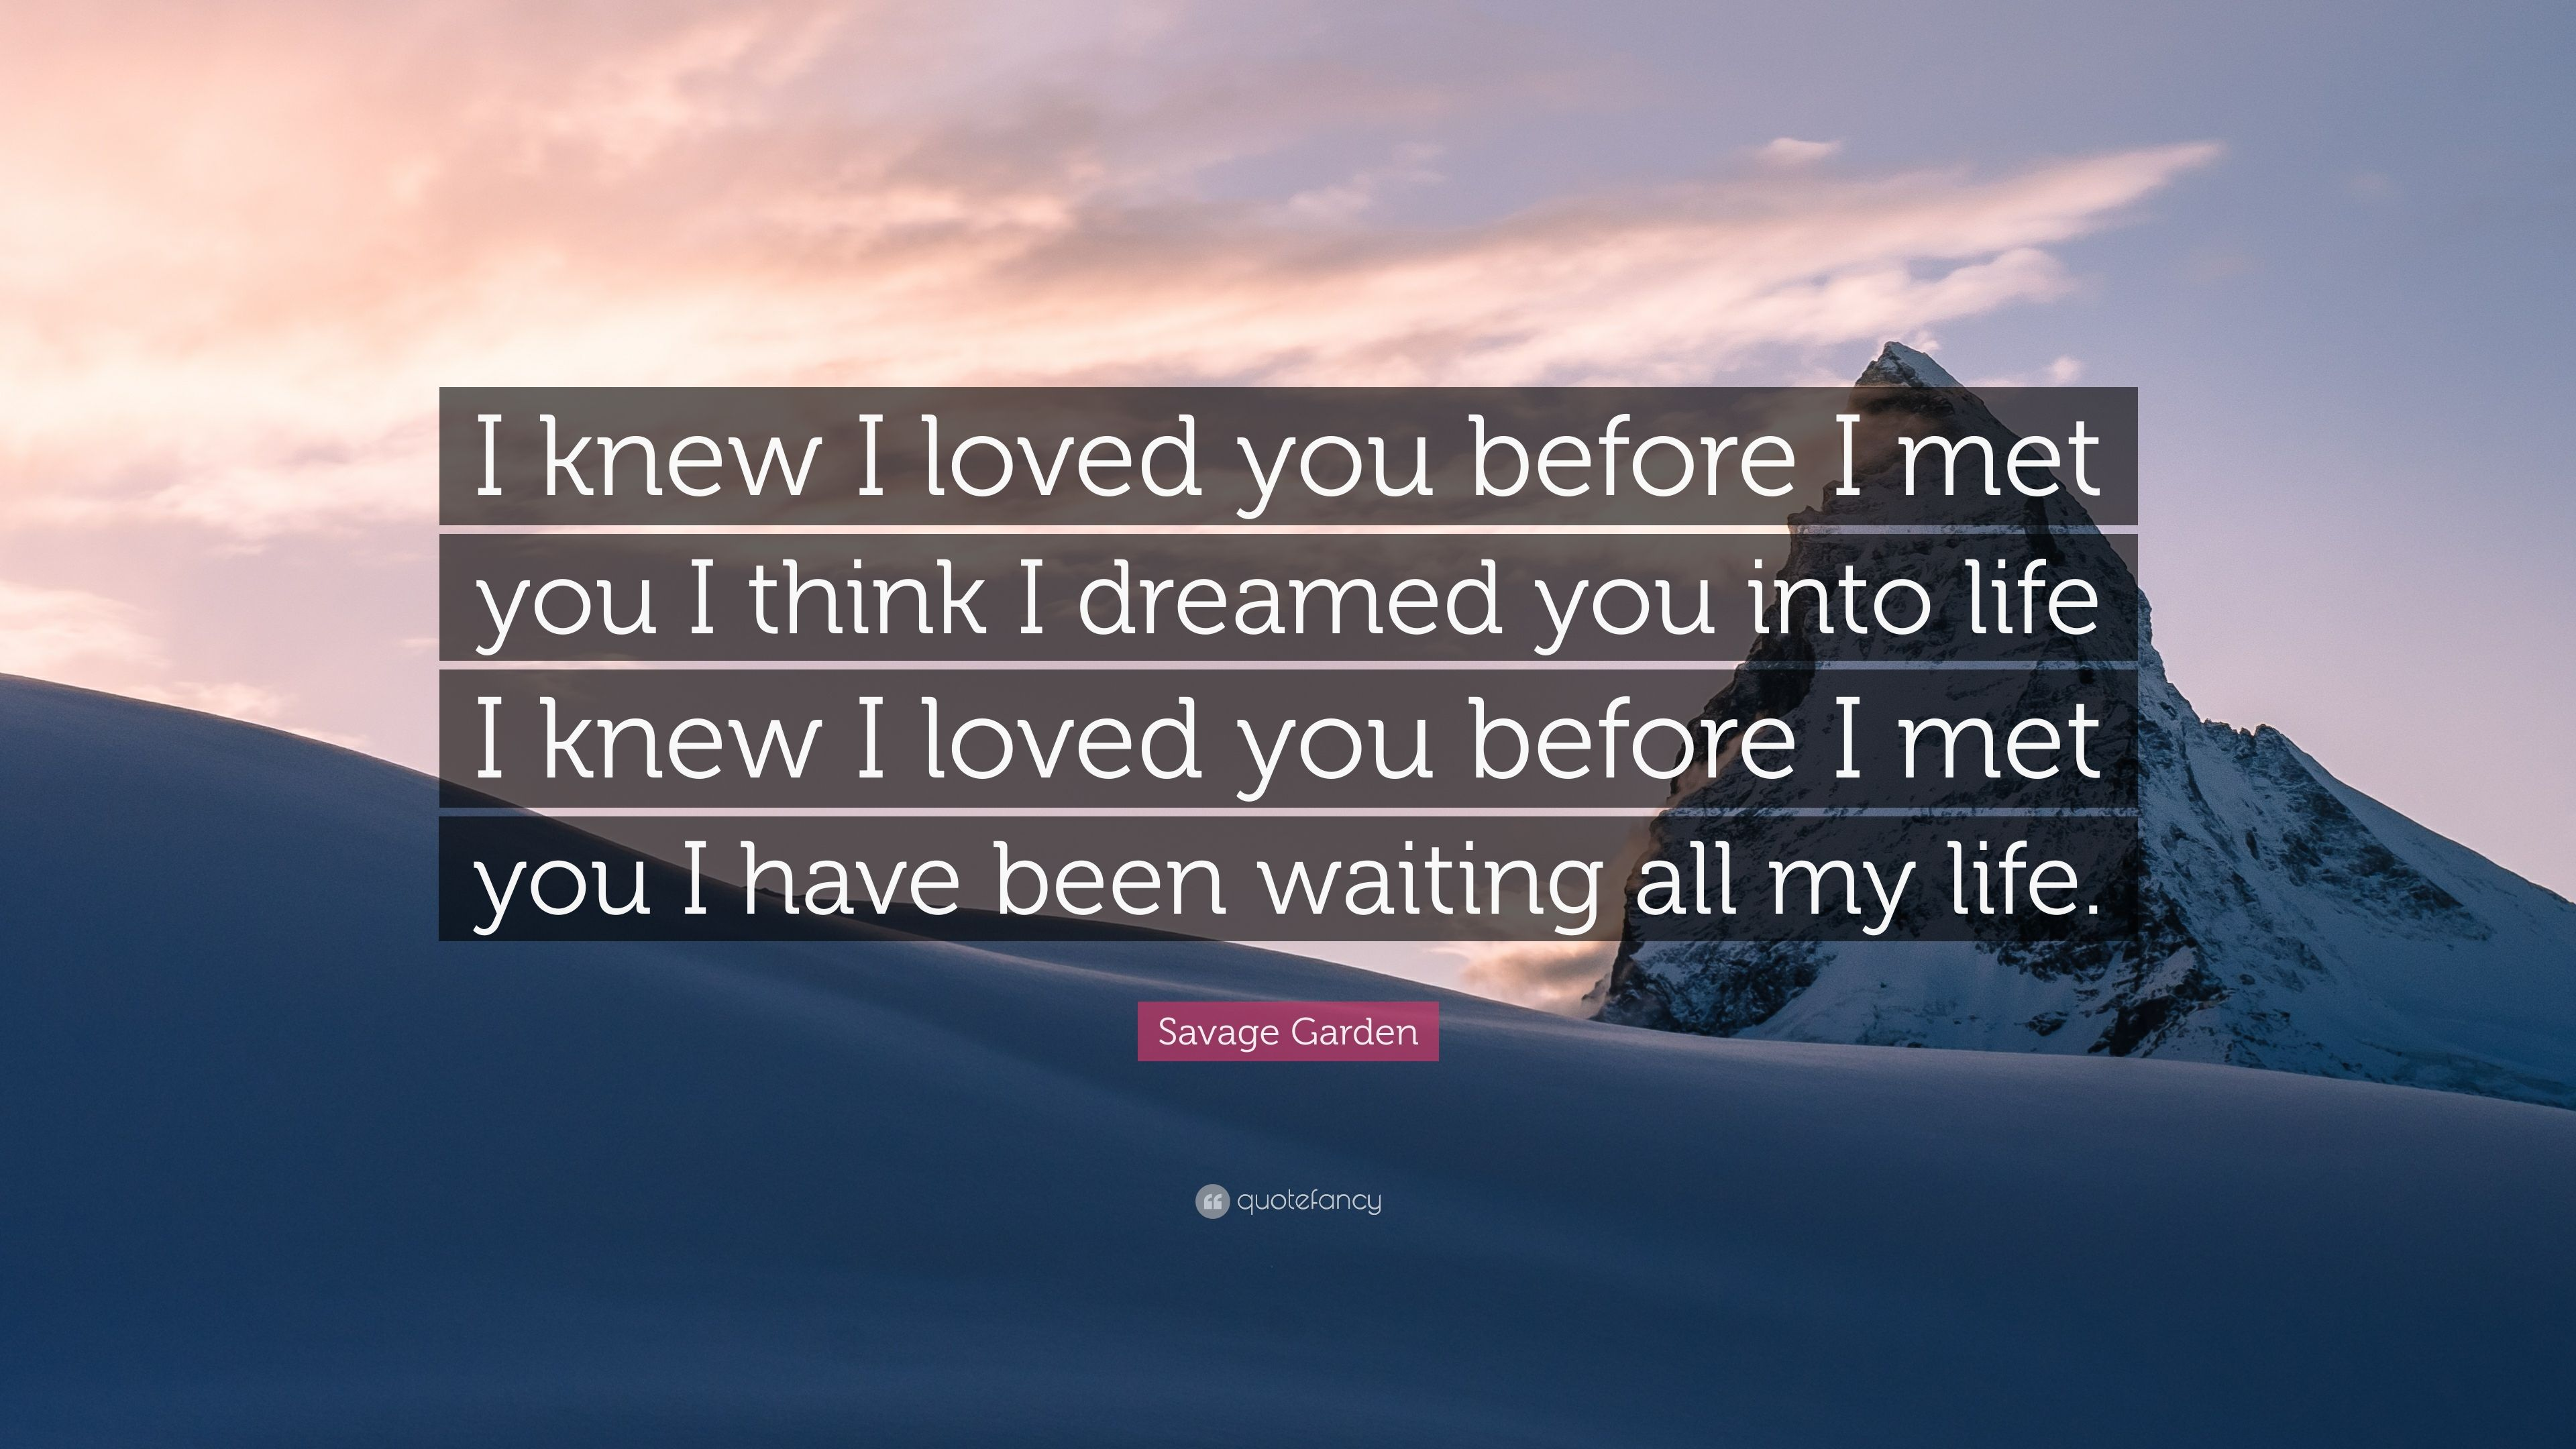 Savage garden quote i knew i loved you before i met you i think i dreamed you into life i knew for I knew i loved you by savage garden